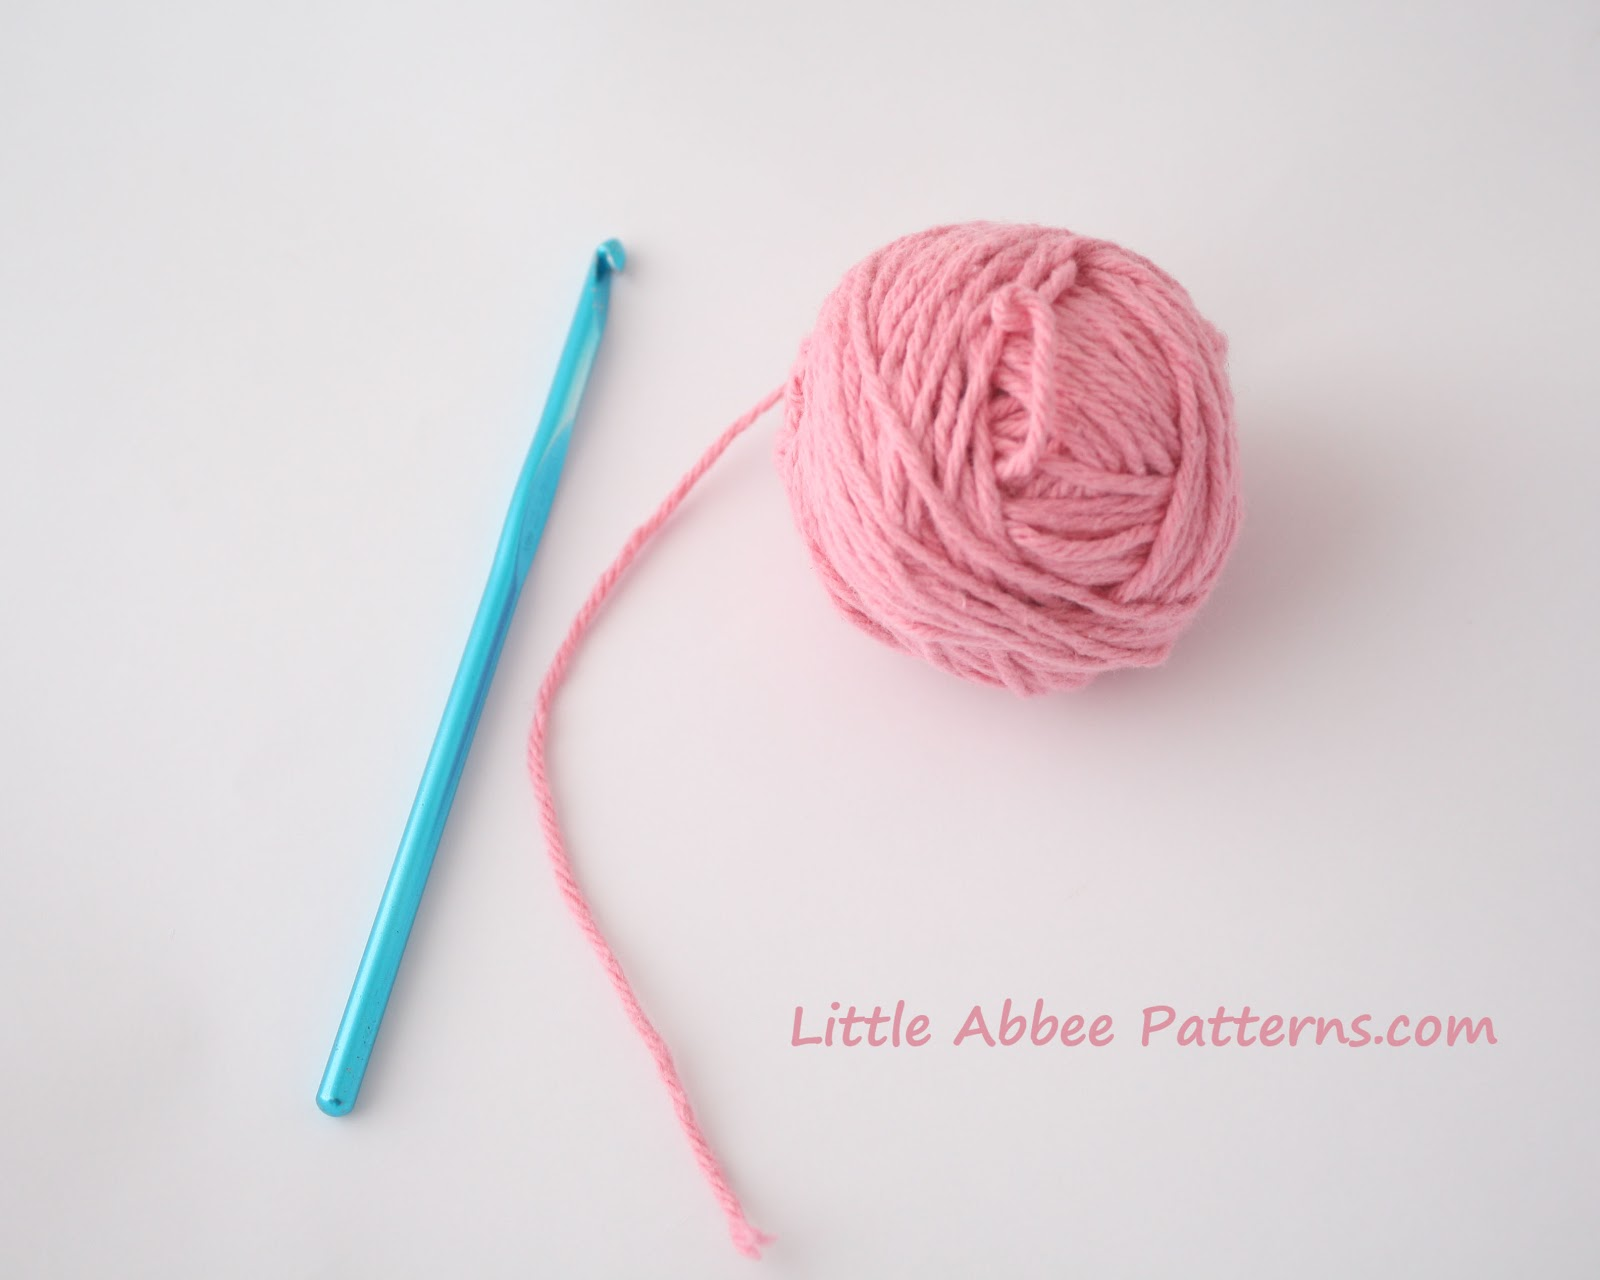 Crochet Knot : you start your crochet project you will either start with a slip knot ...